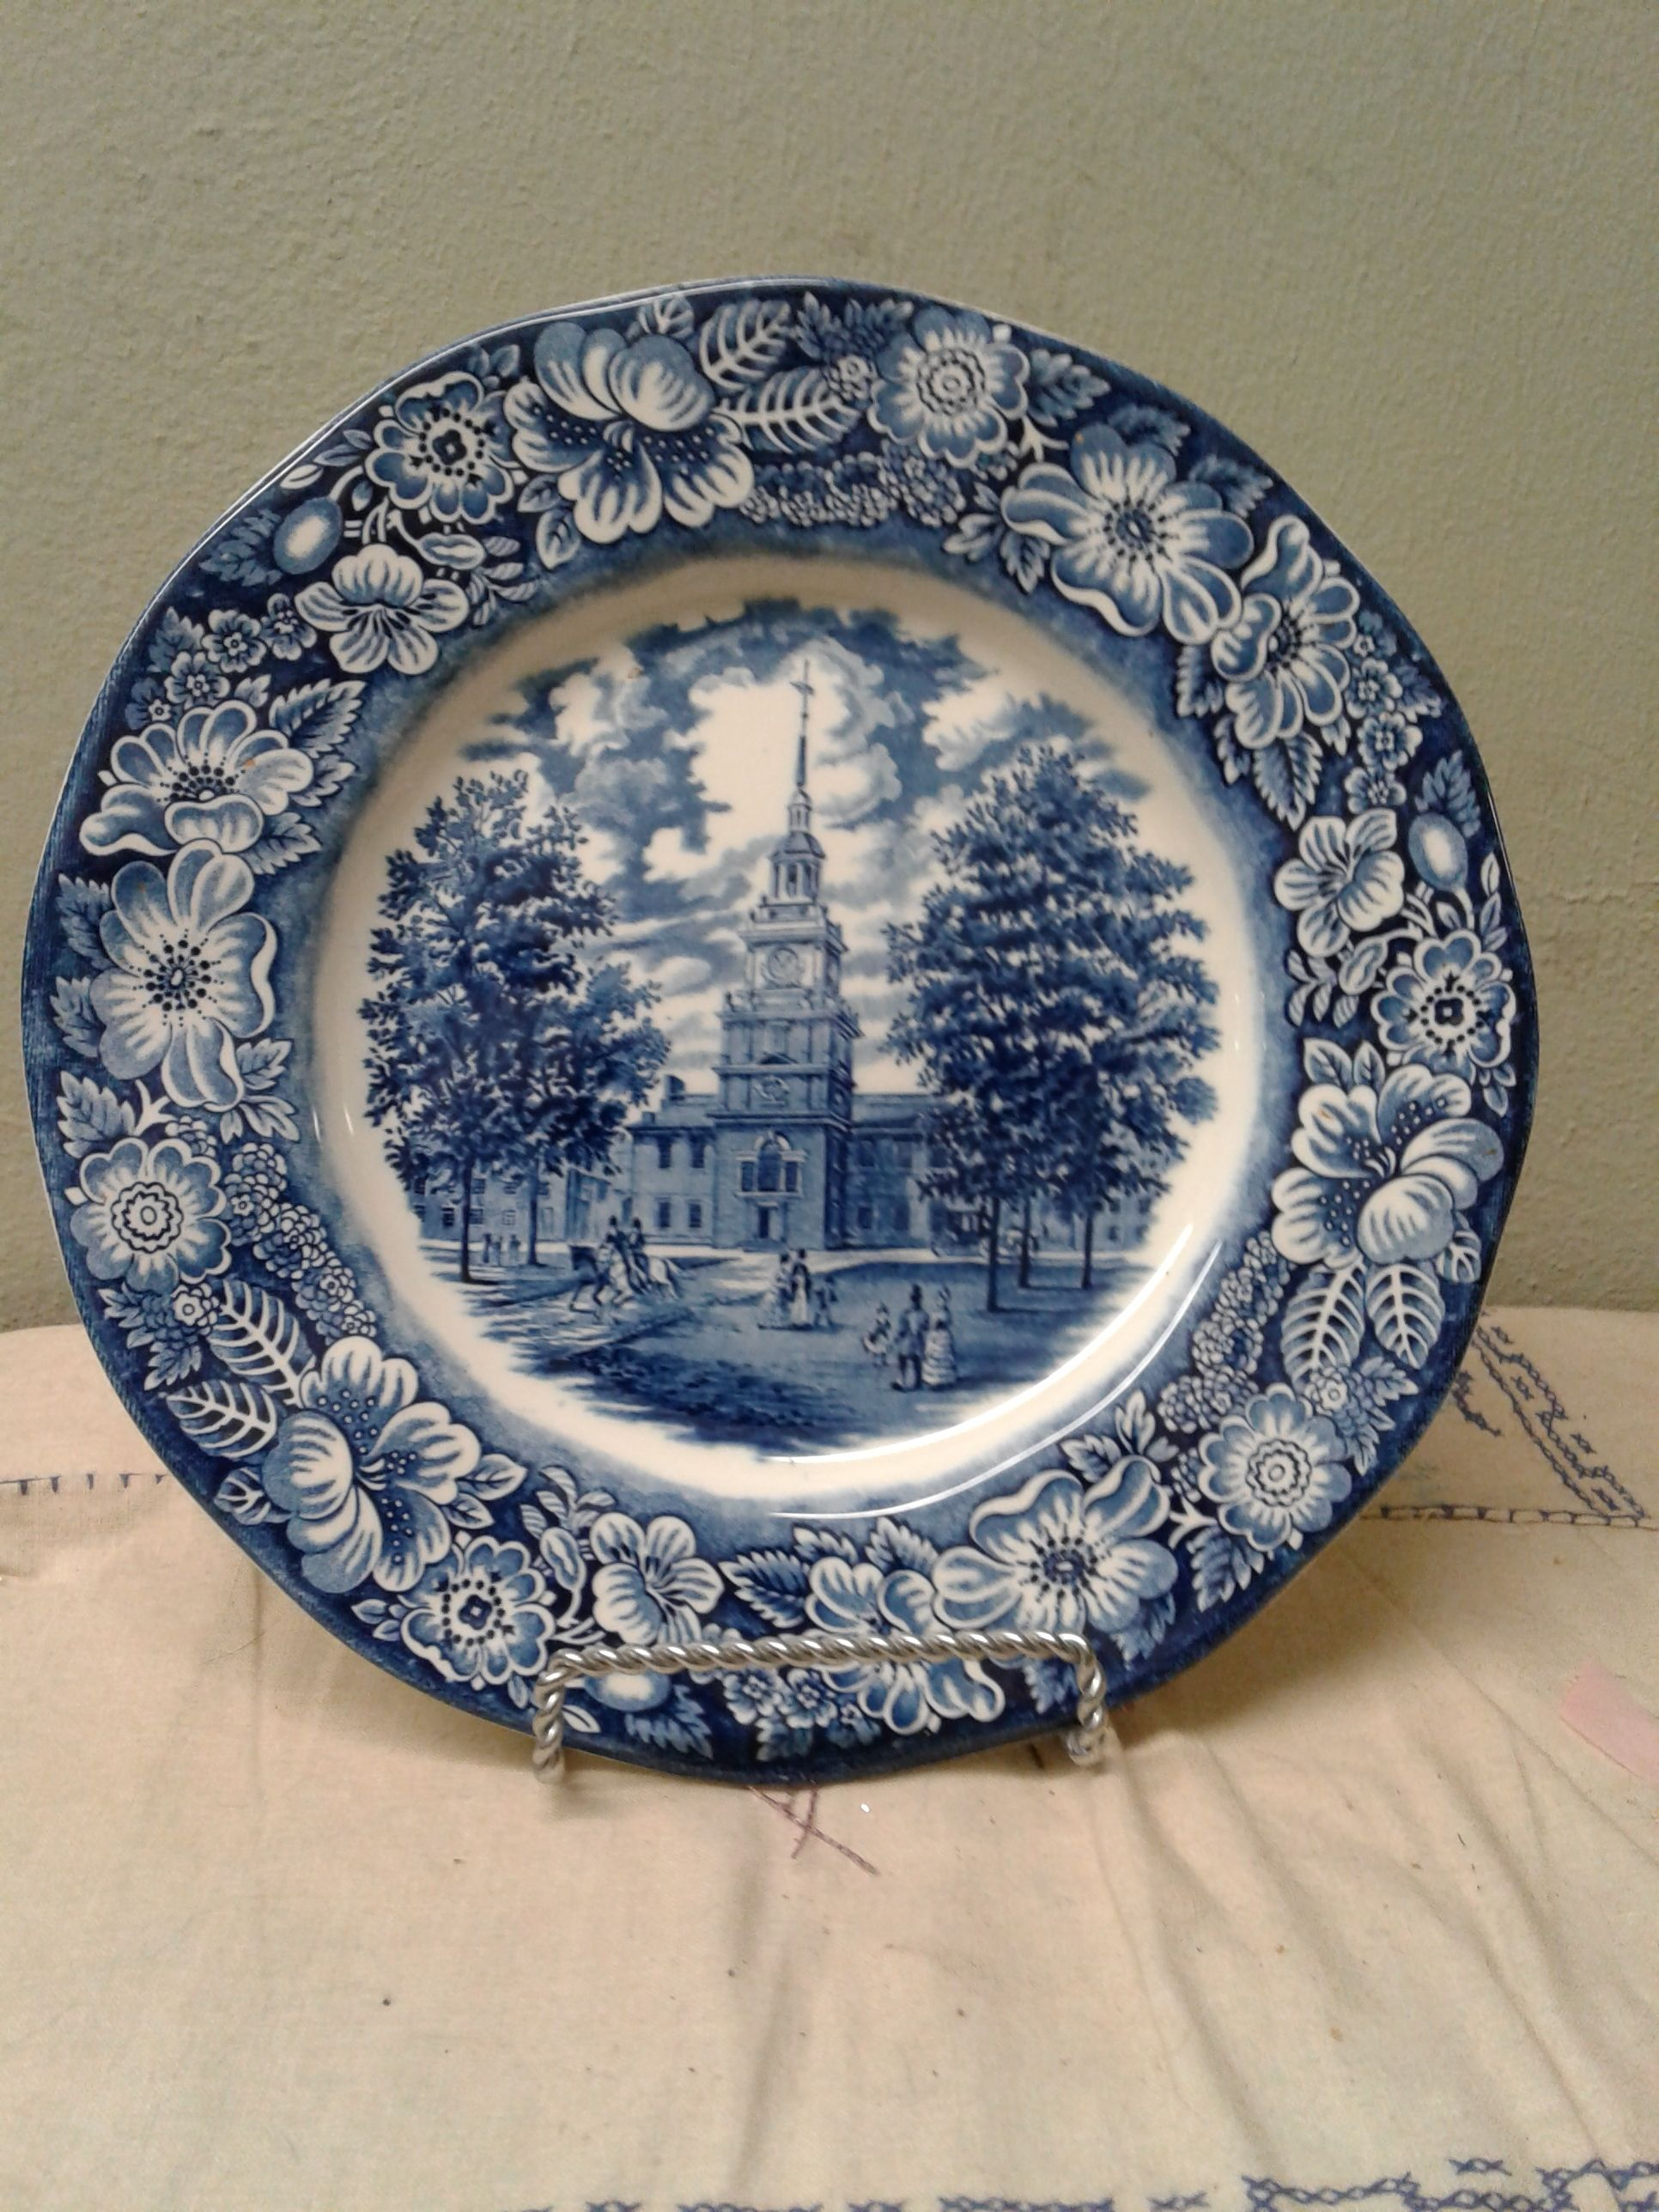 Liberty Blue Staffordshire Ironstone Bread Butter Plate England Dishwasher safe